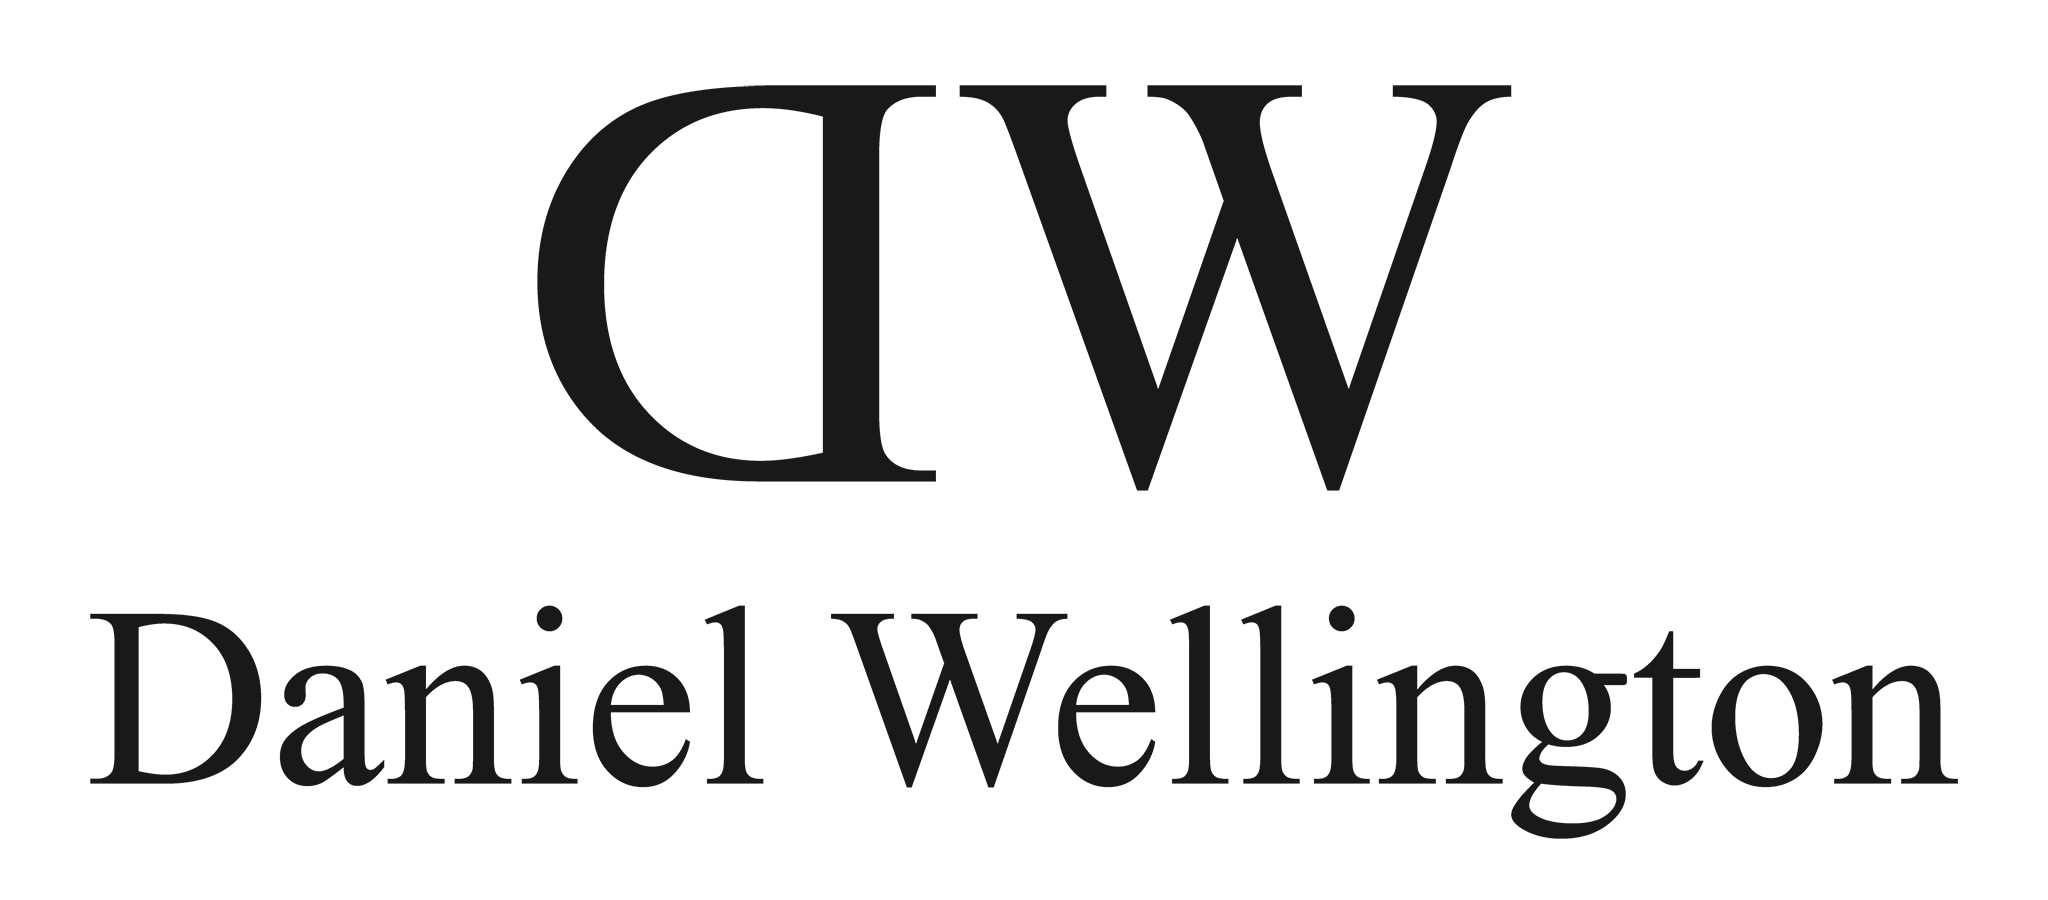 Daniel Wellington promo codes